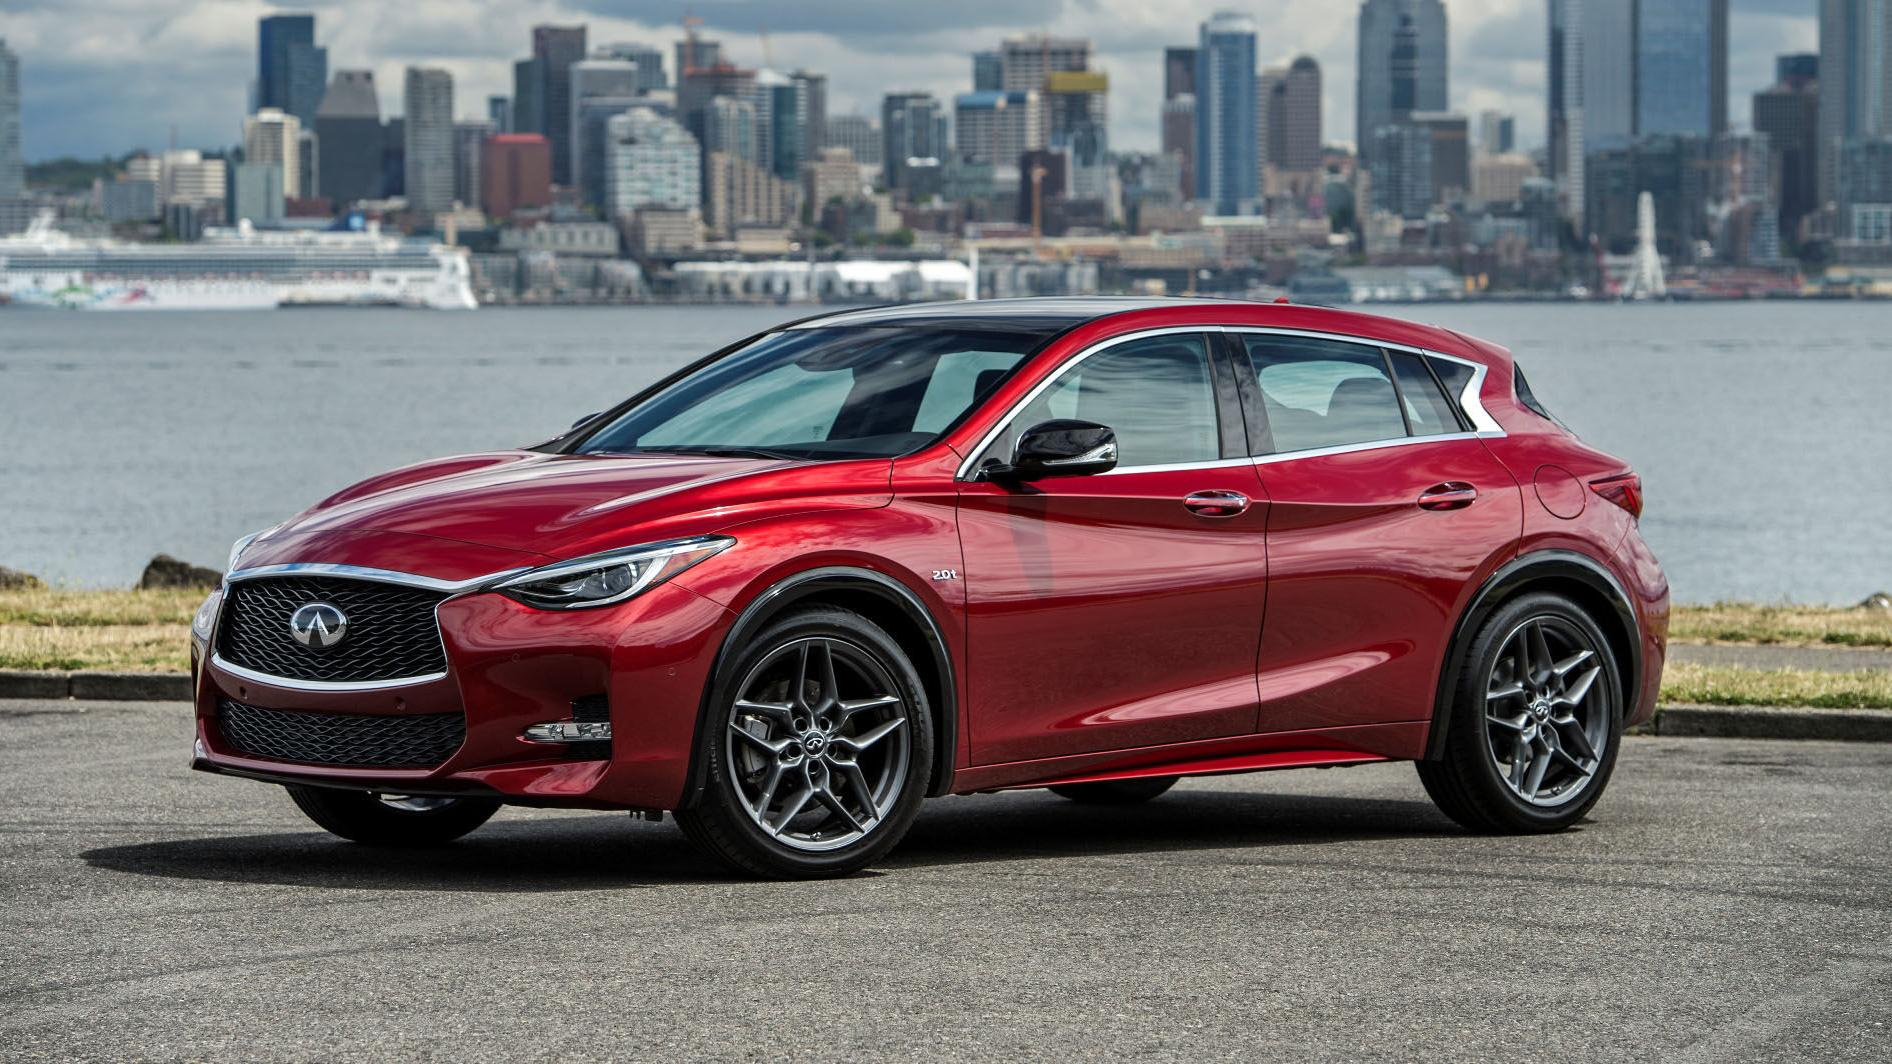 2018 Infiniti QX30: We drove a Sport, which is appropriately named